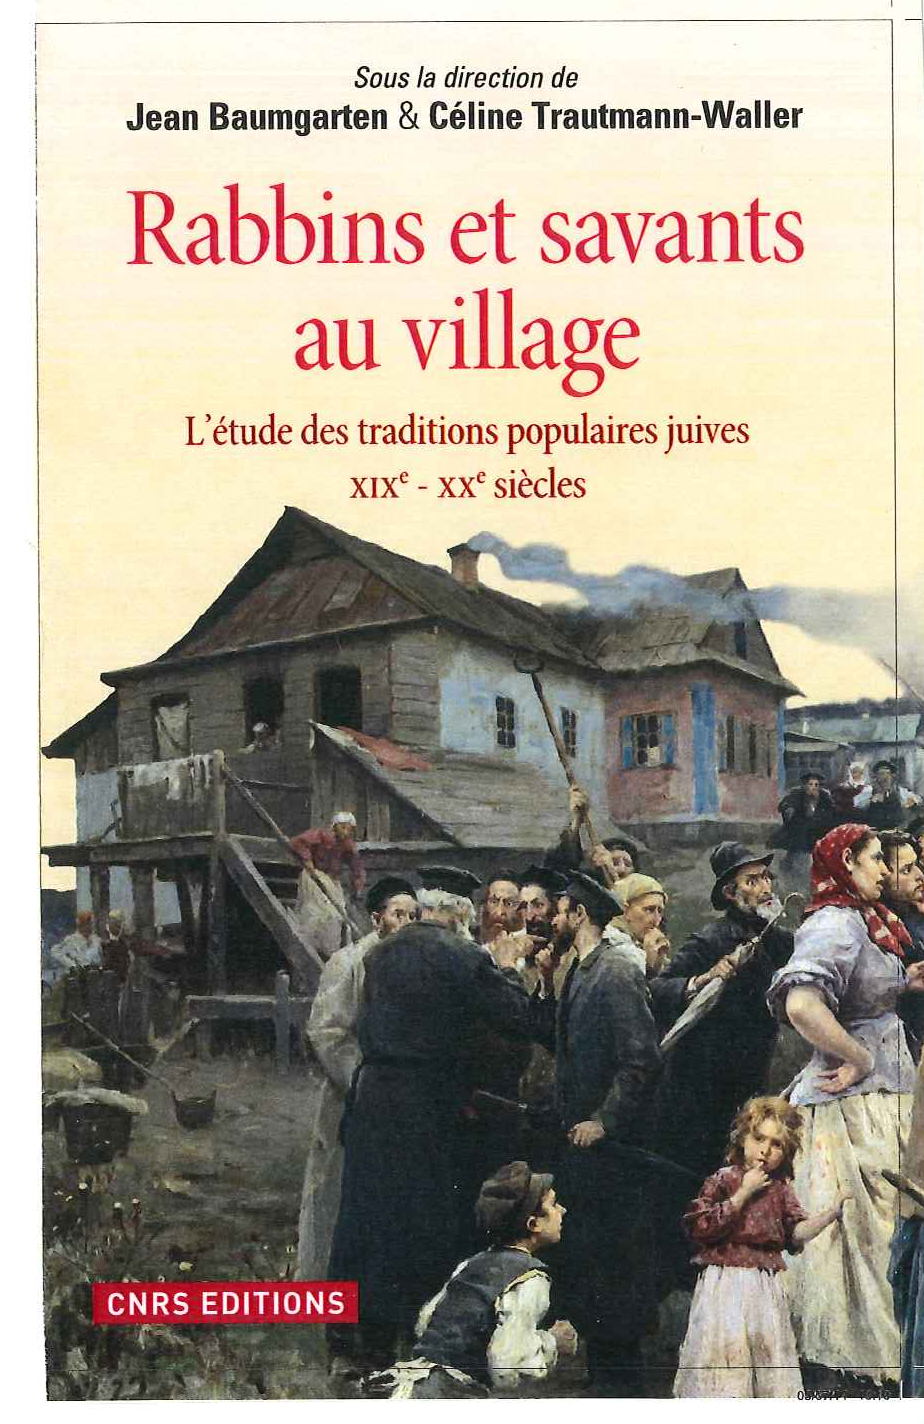 Rabbins et savants au village